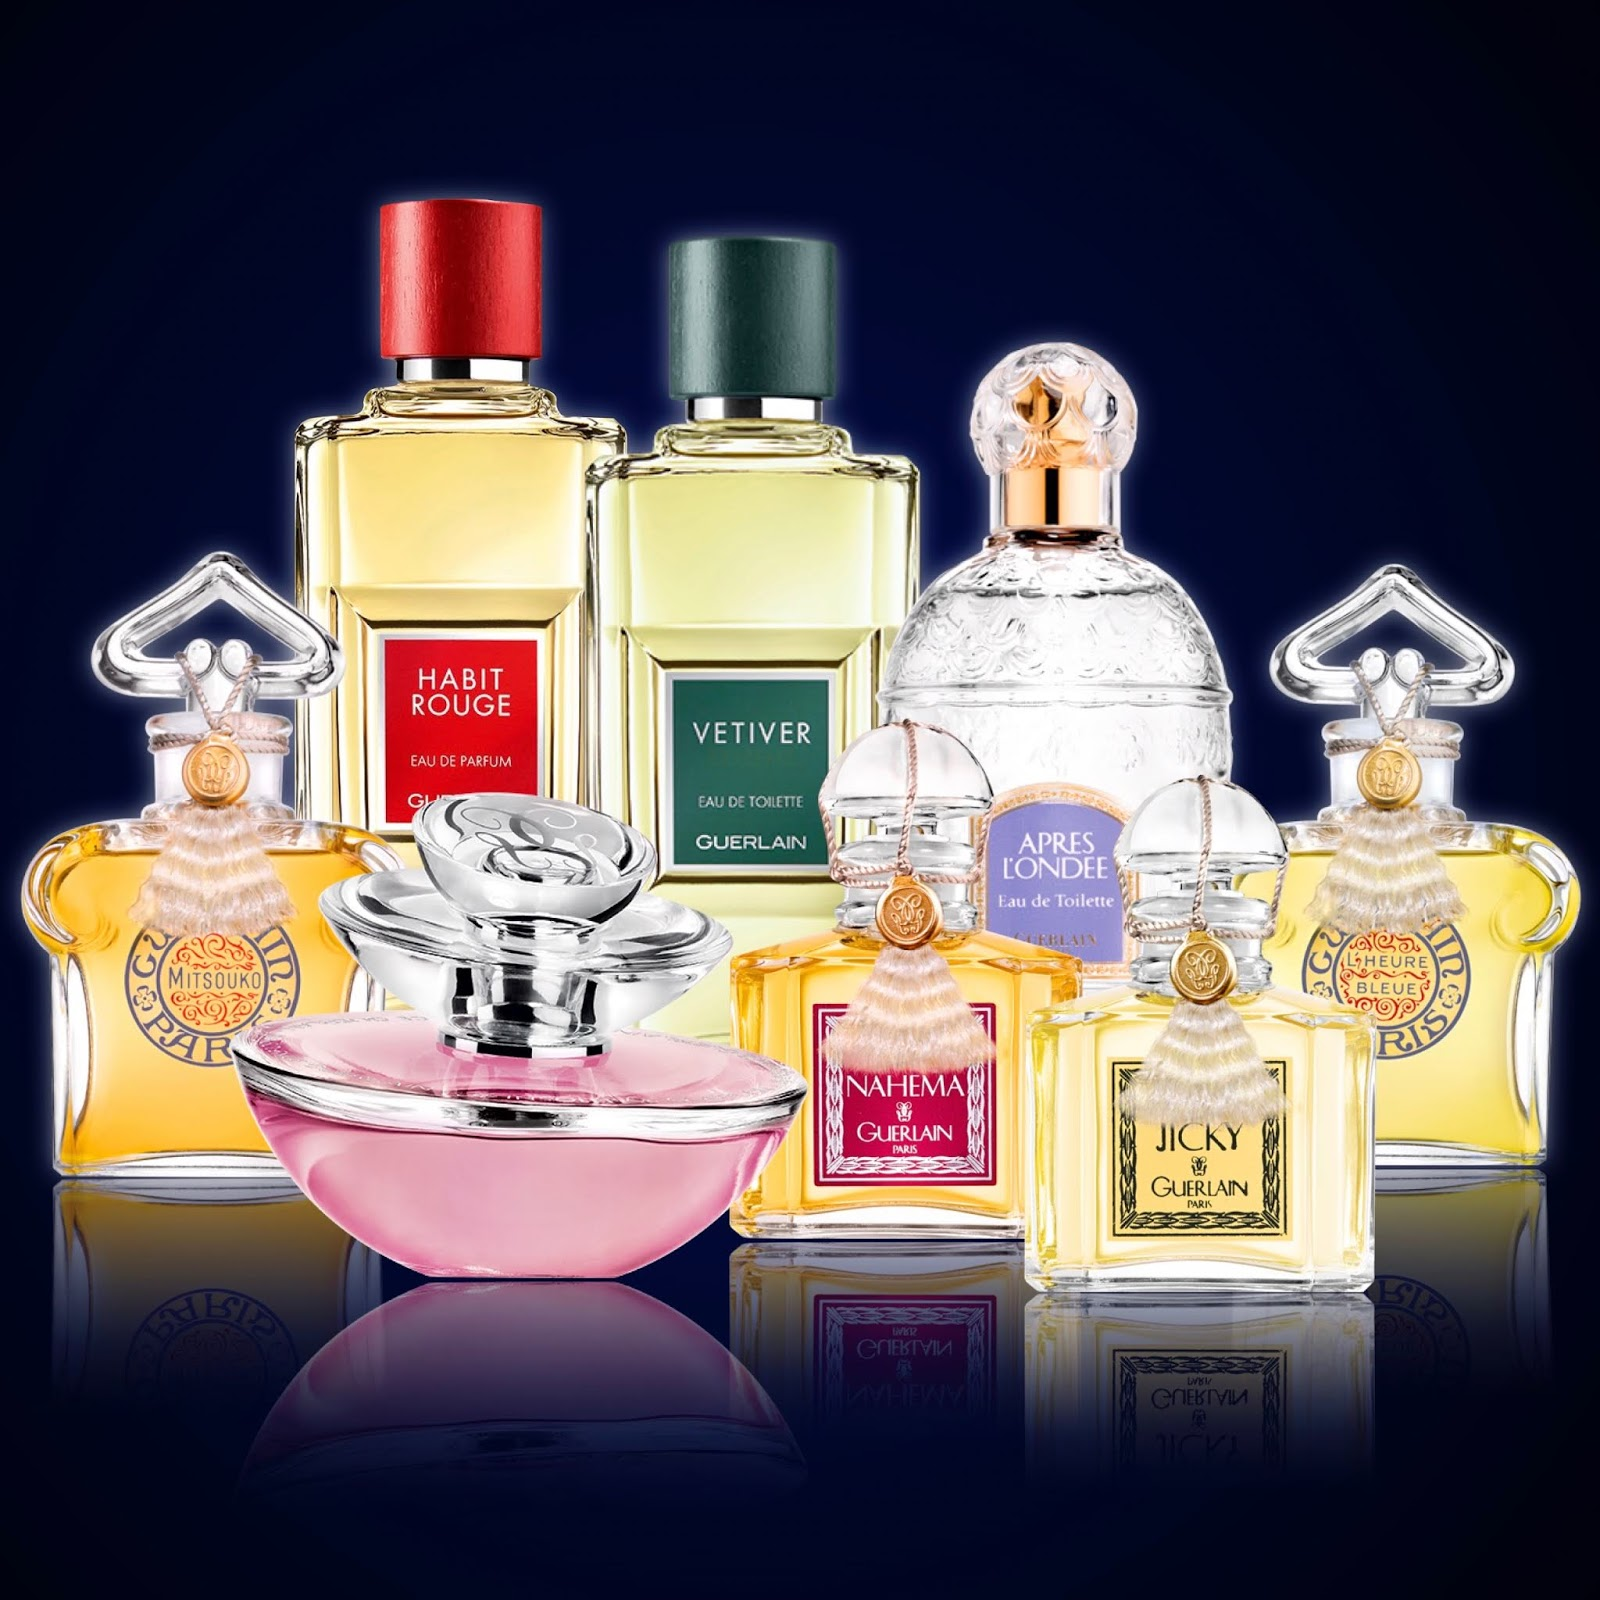 Communication on this topic: Best Guerlain Perfumes – Our Top 5, best-guerlain-perfumes-our-top-5/